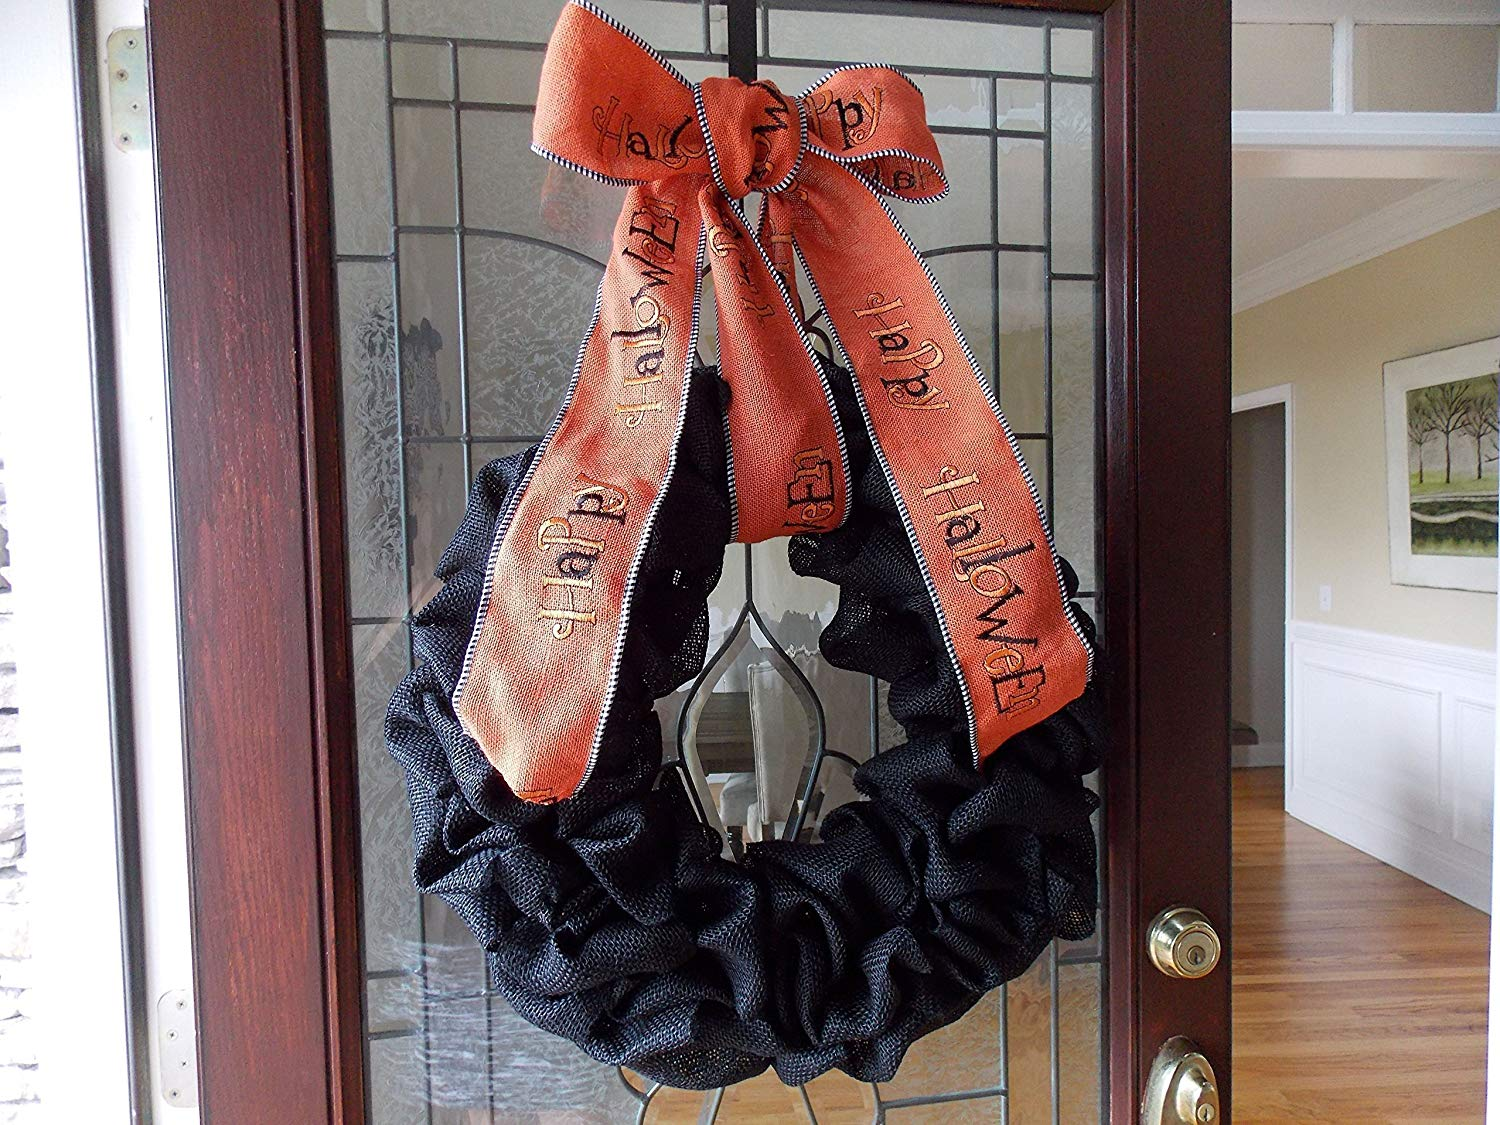 Halloween Wreath-Halloween Wreaths-Fall Wreath-Fall Wreaths for Front Door-Black Wreath-Burlap Wreath-Wreaths for Front Door-Fall Door Decor-Fall Door Wreaths